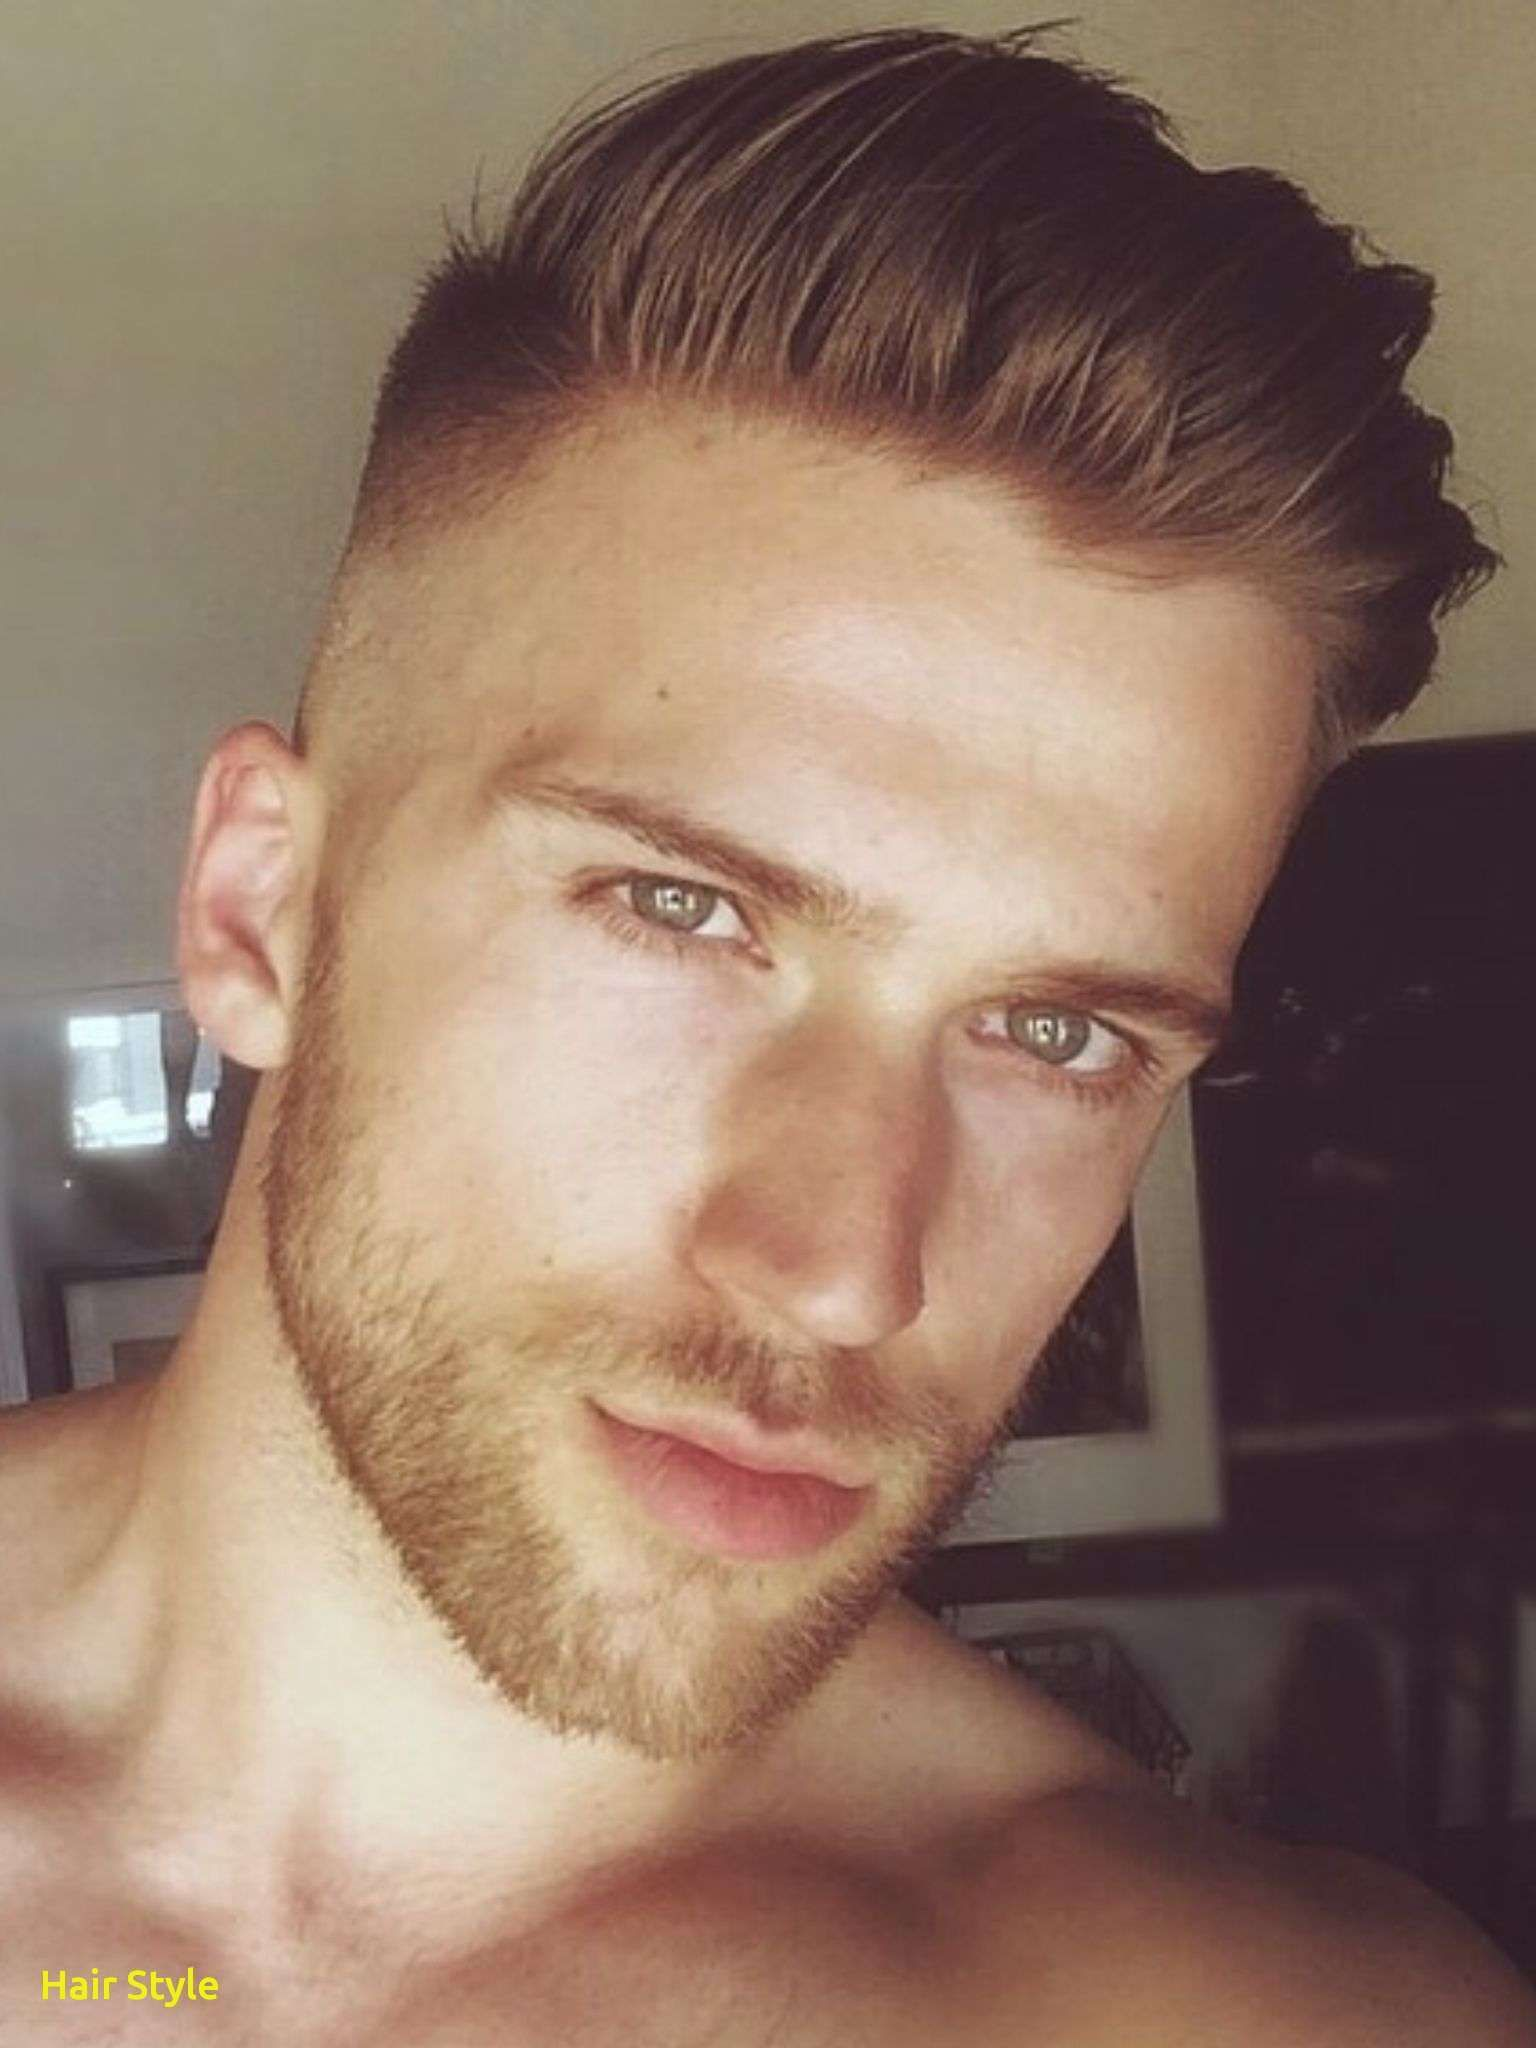 Fresh 2019 Herren Frisuren Gq Haare Manner Manner Frisuren